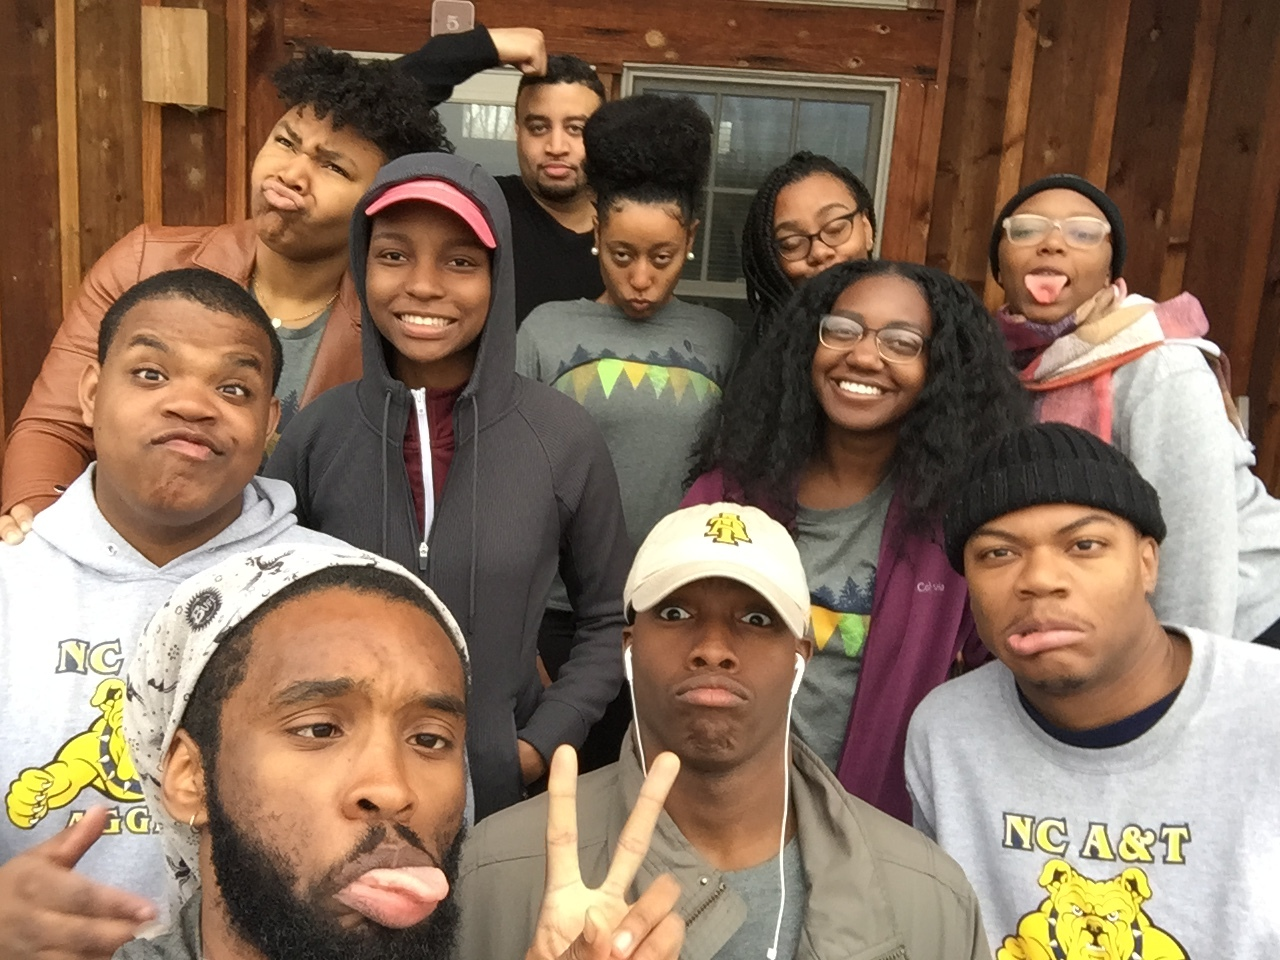 Alternative Spring Break at James River State Park, Gladstone, VA